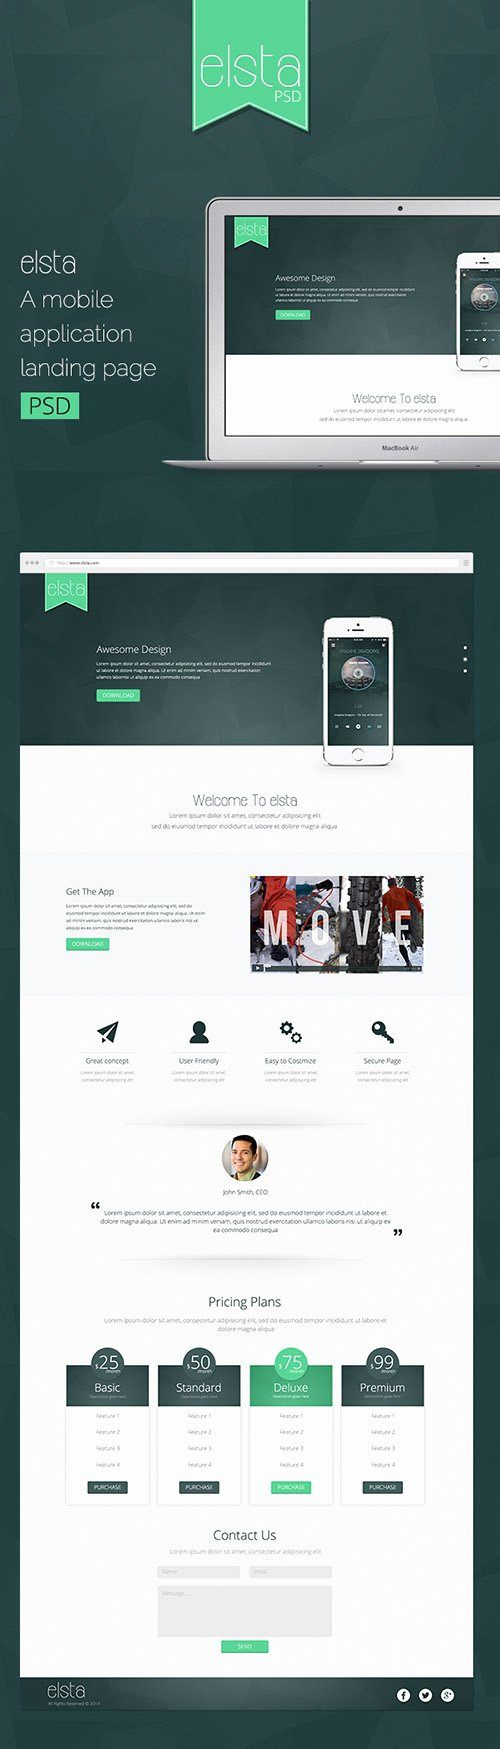 Psd Web Template – Elsta – Mobile Application Landing Page